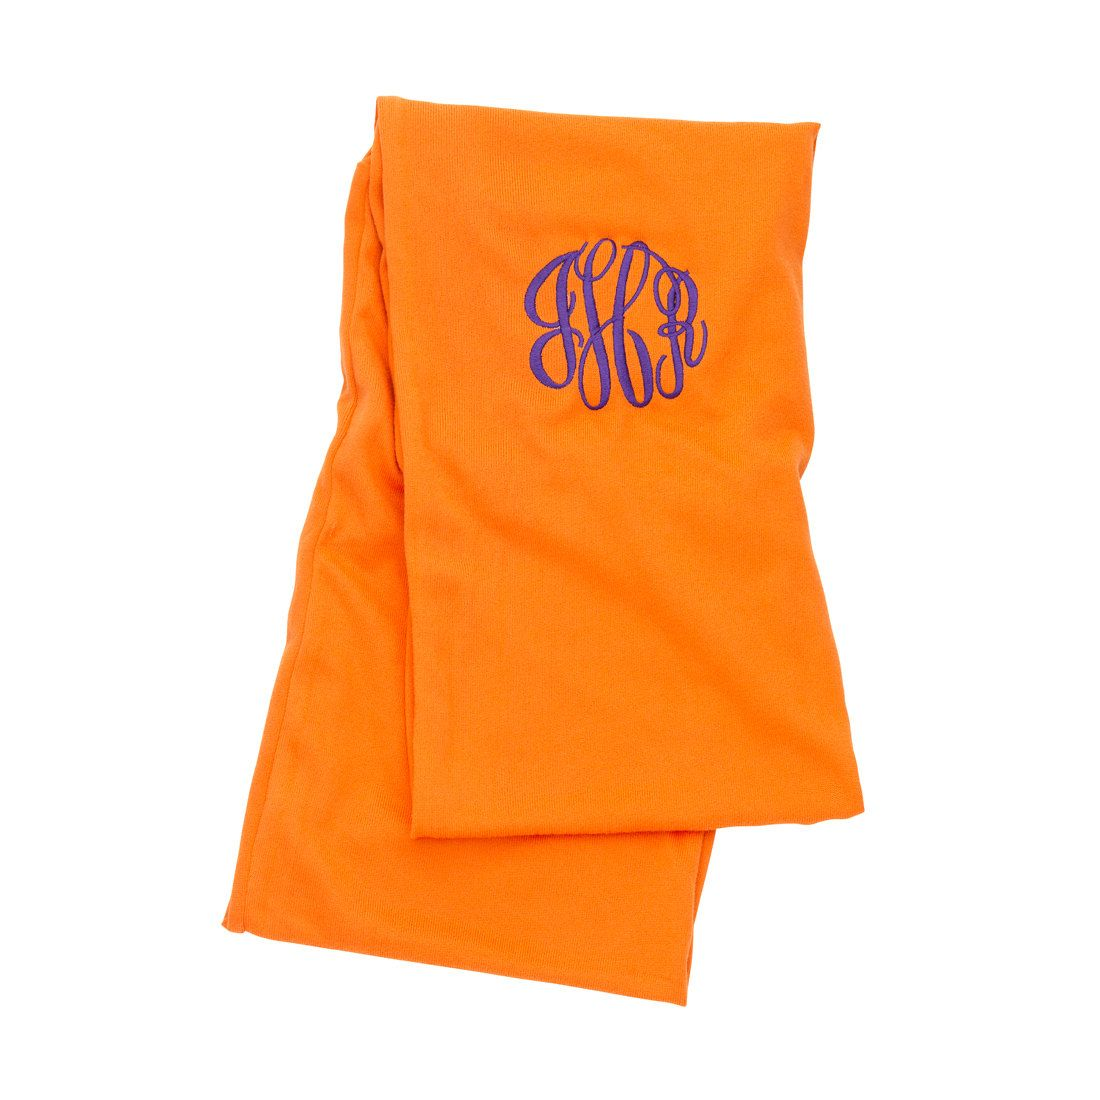 Orange Monogram Scarf - Personalized Scarf - Women's Scarf - Monogram Team Scarf - Monogram Scarf- Initials Scarf - Customized Scarf by SerenityoftheSouth on Etsy #monogram #scarf #teamColors #22.95